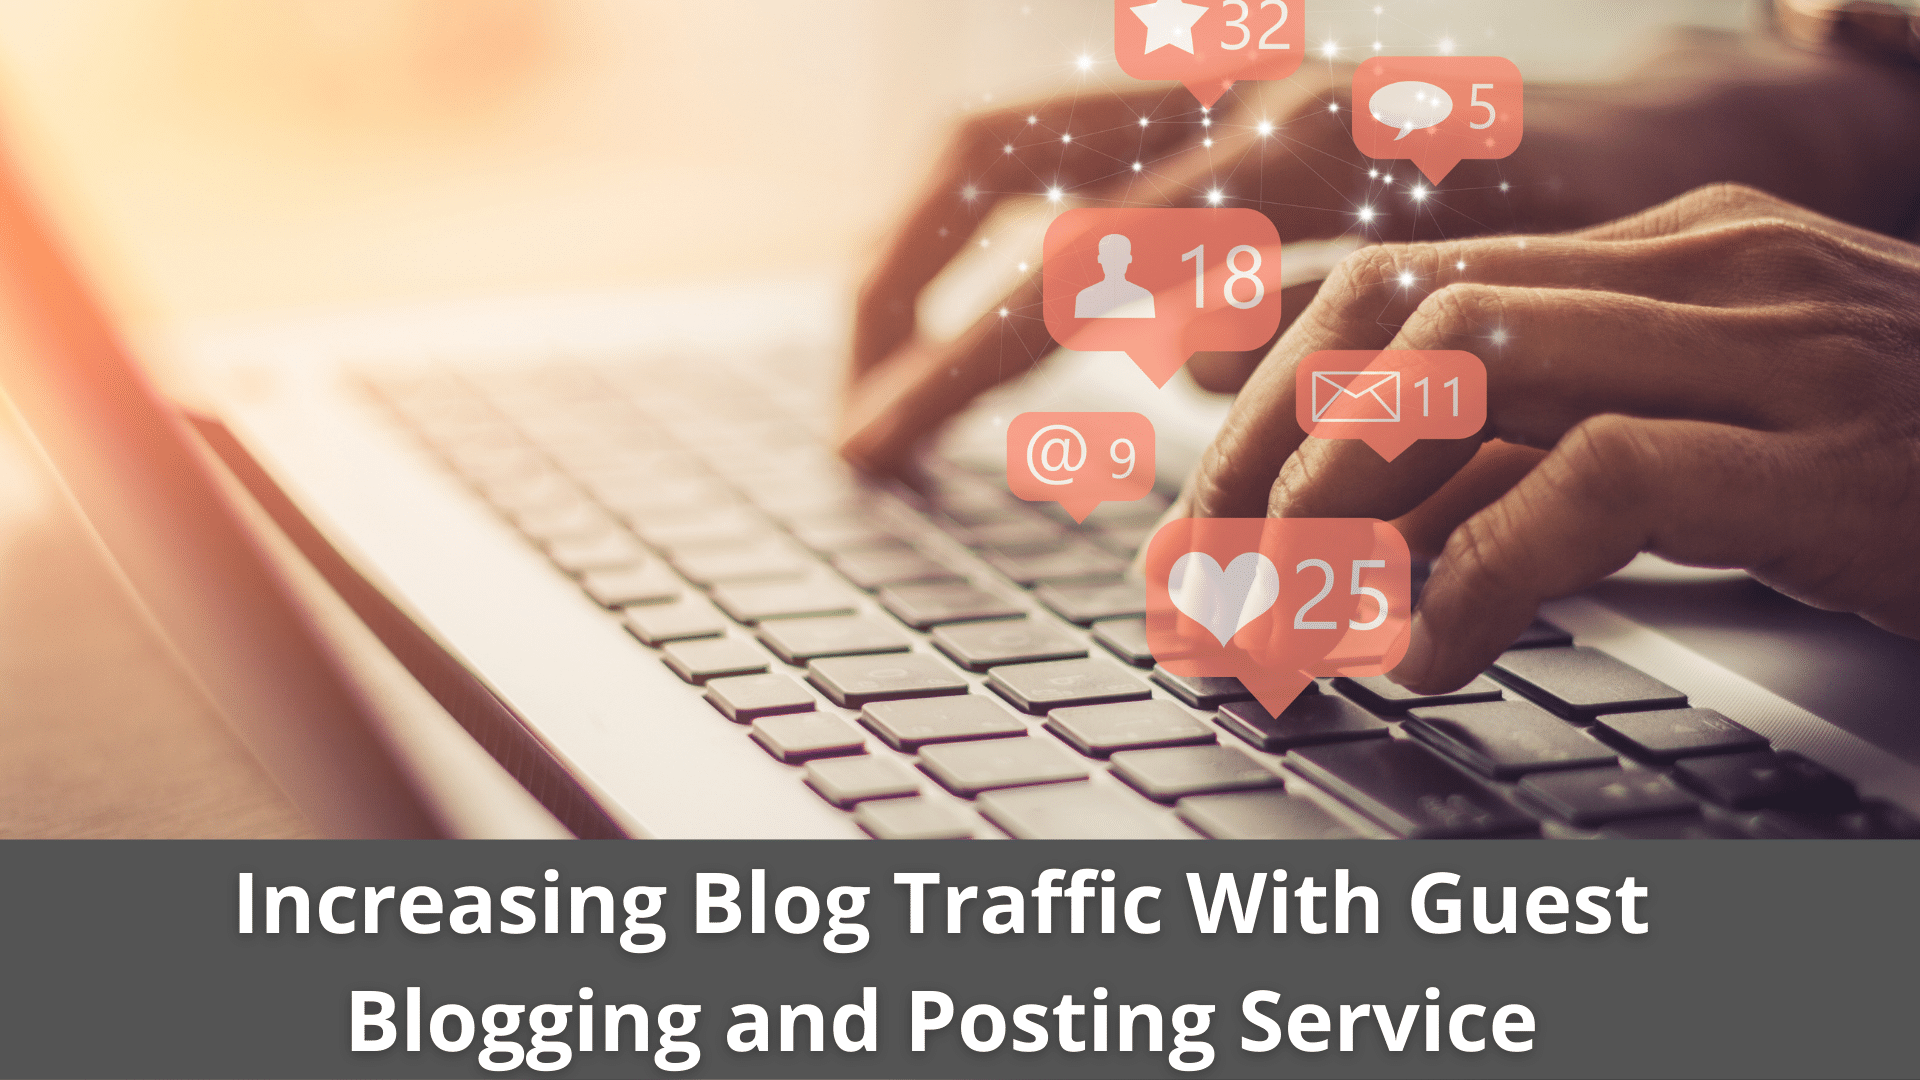 Increasing Blog Traffic With Guest Blogging and Posting Service 41